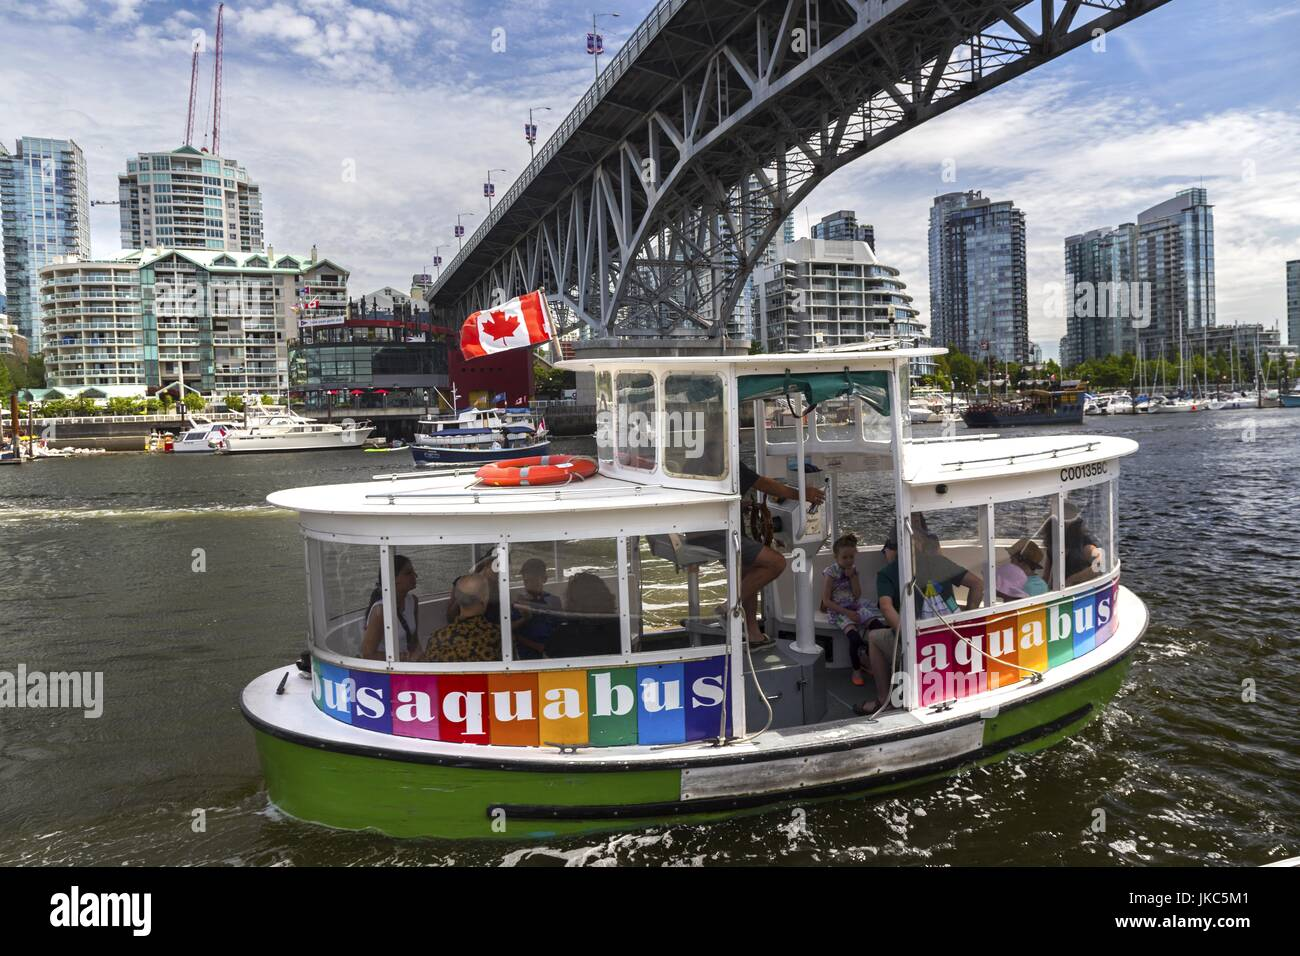 Aquabus Water Taxi Transporting Passengers from Granville Island across False Creek in Vancouver British Columbia Stock Photo